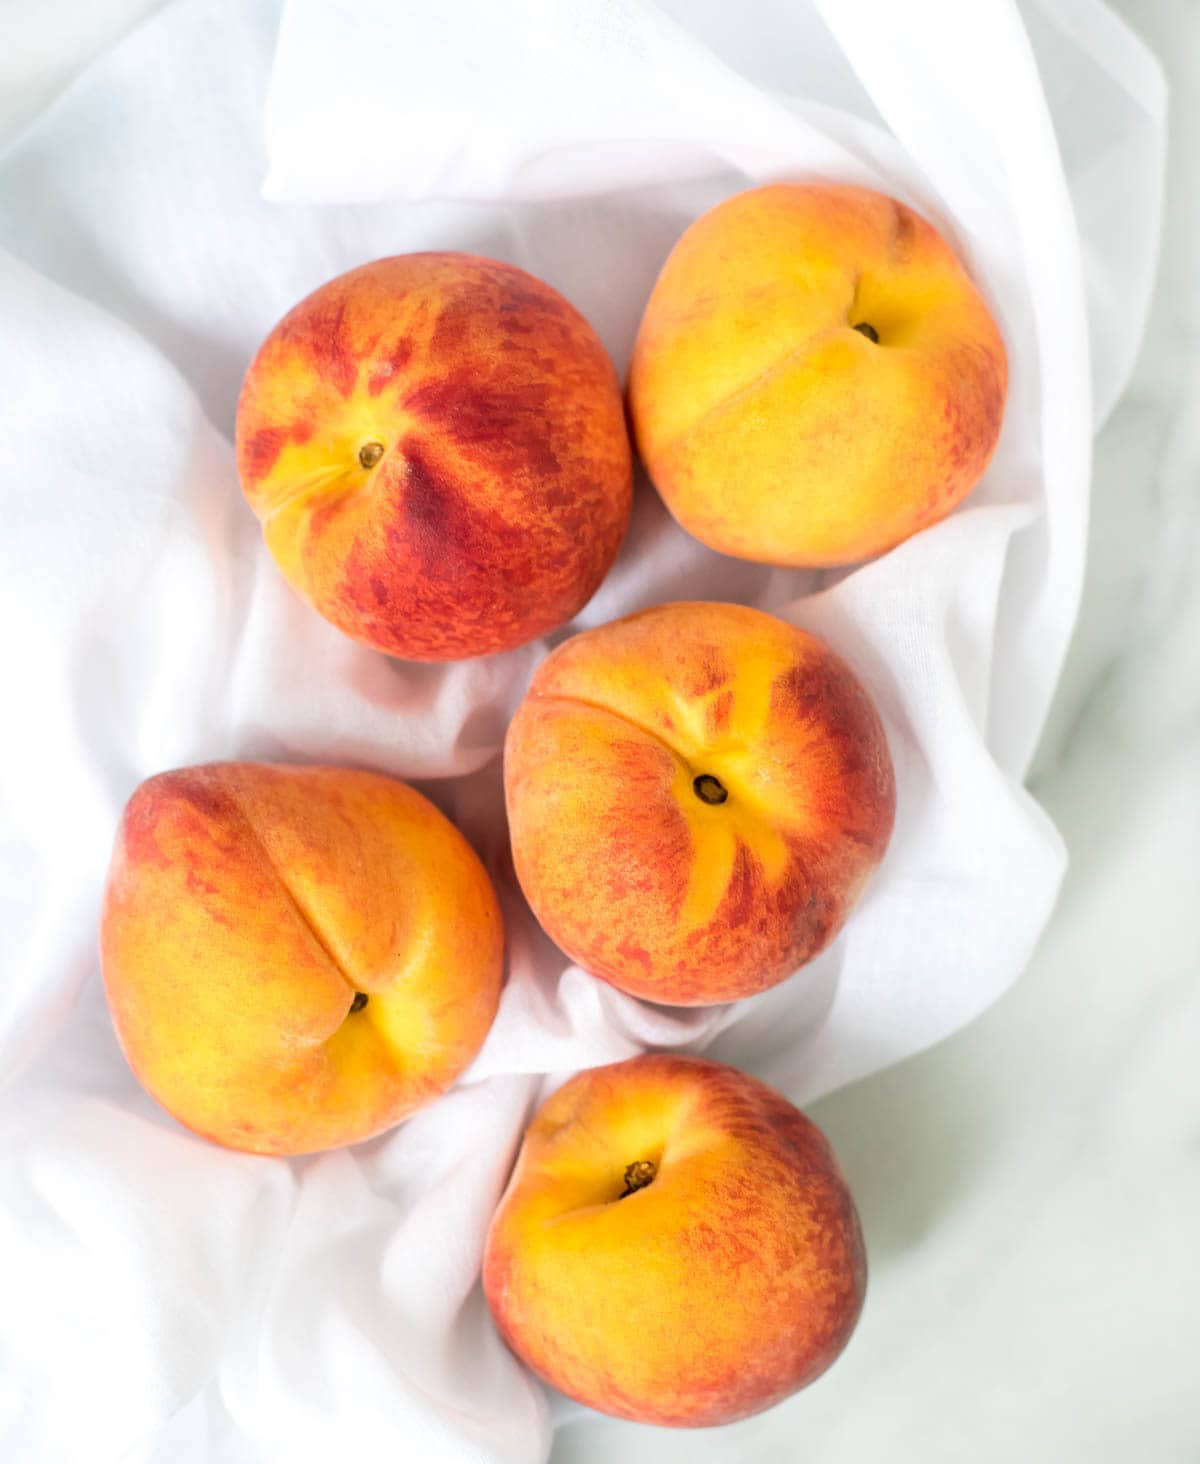 Crock Pot Peach Cobbler recipe — EASY and DELICIOUS summer dessert. Like a dump cake, you just toss the ingredients into your slow cooker. The crockpot does the work, and it tastes amazing! @wellplated